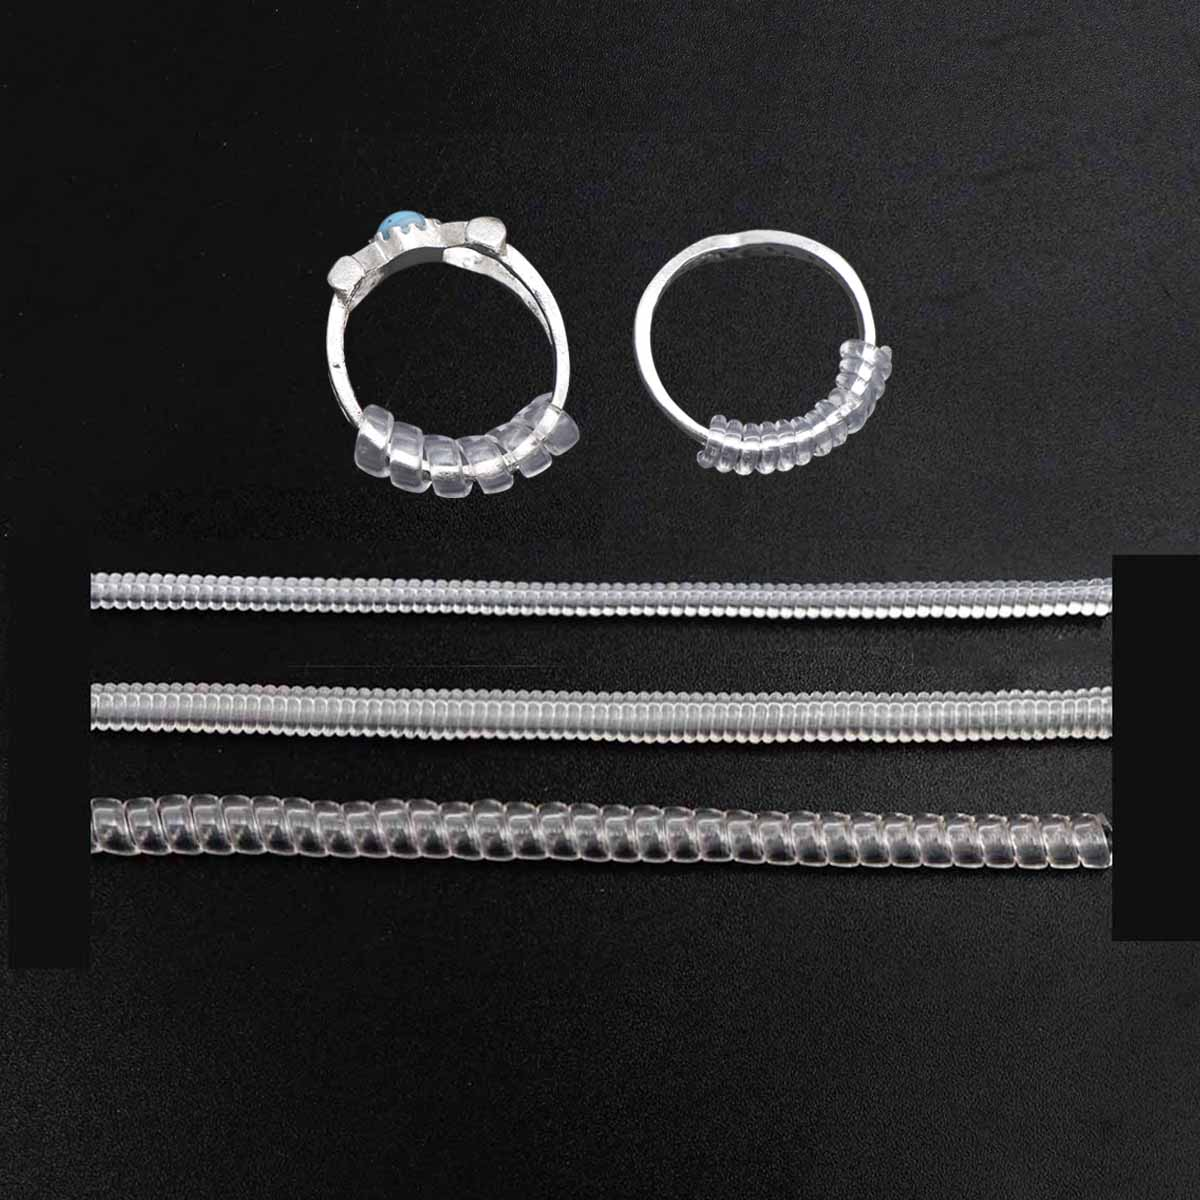 3Size 10cm Clear Ring Spiral Based Ring Size Adjuster Guard Tightener Reducer Resizing Tools Jewelry Accessories